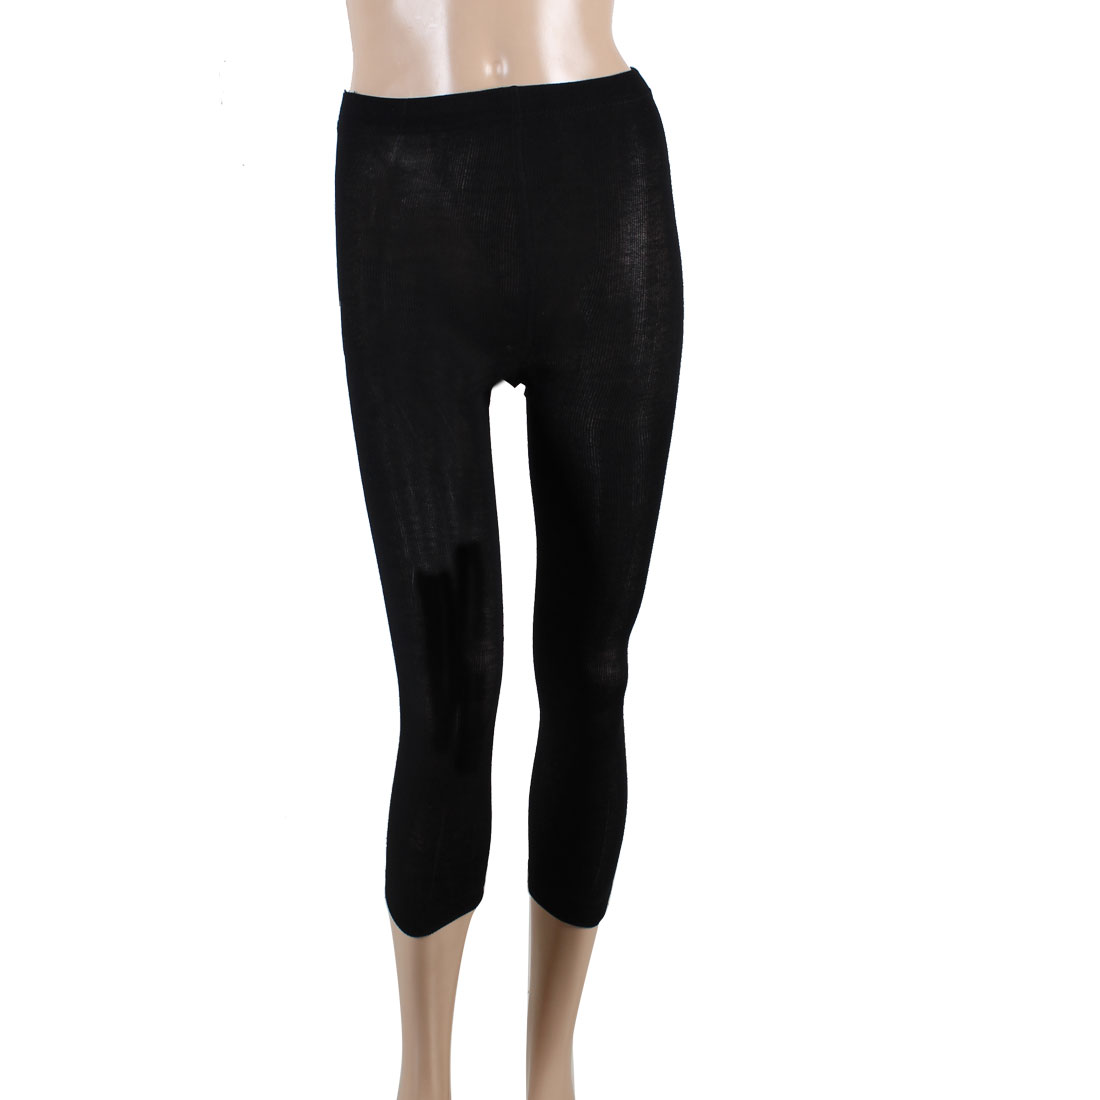 Ladies Autumn Warmers Black Elastic Waist Leggings XS